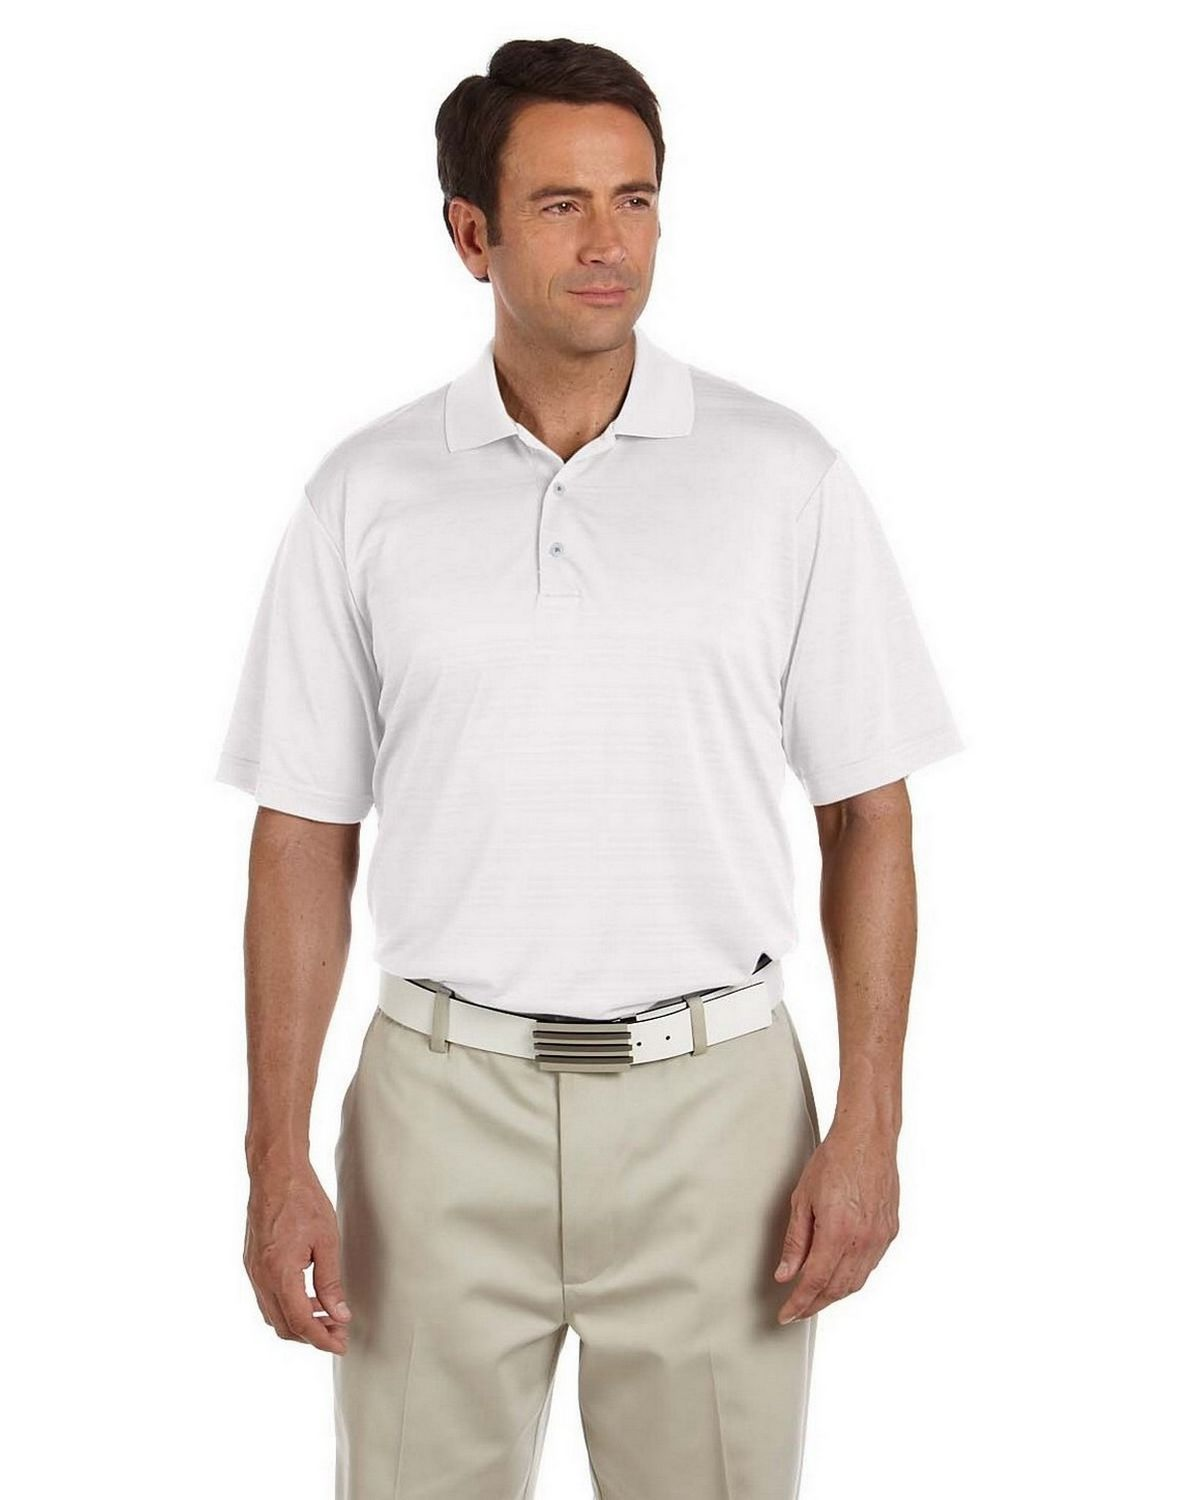 855e7a3f Buy Adidas Golf A161 Men's ClimaLite Textured Short-Sleeve Polo